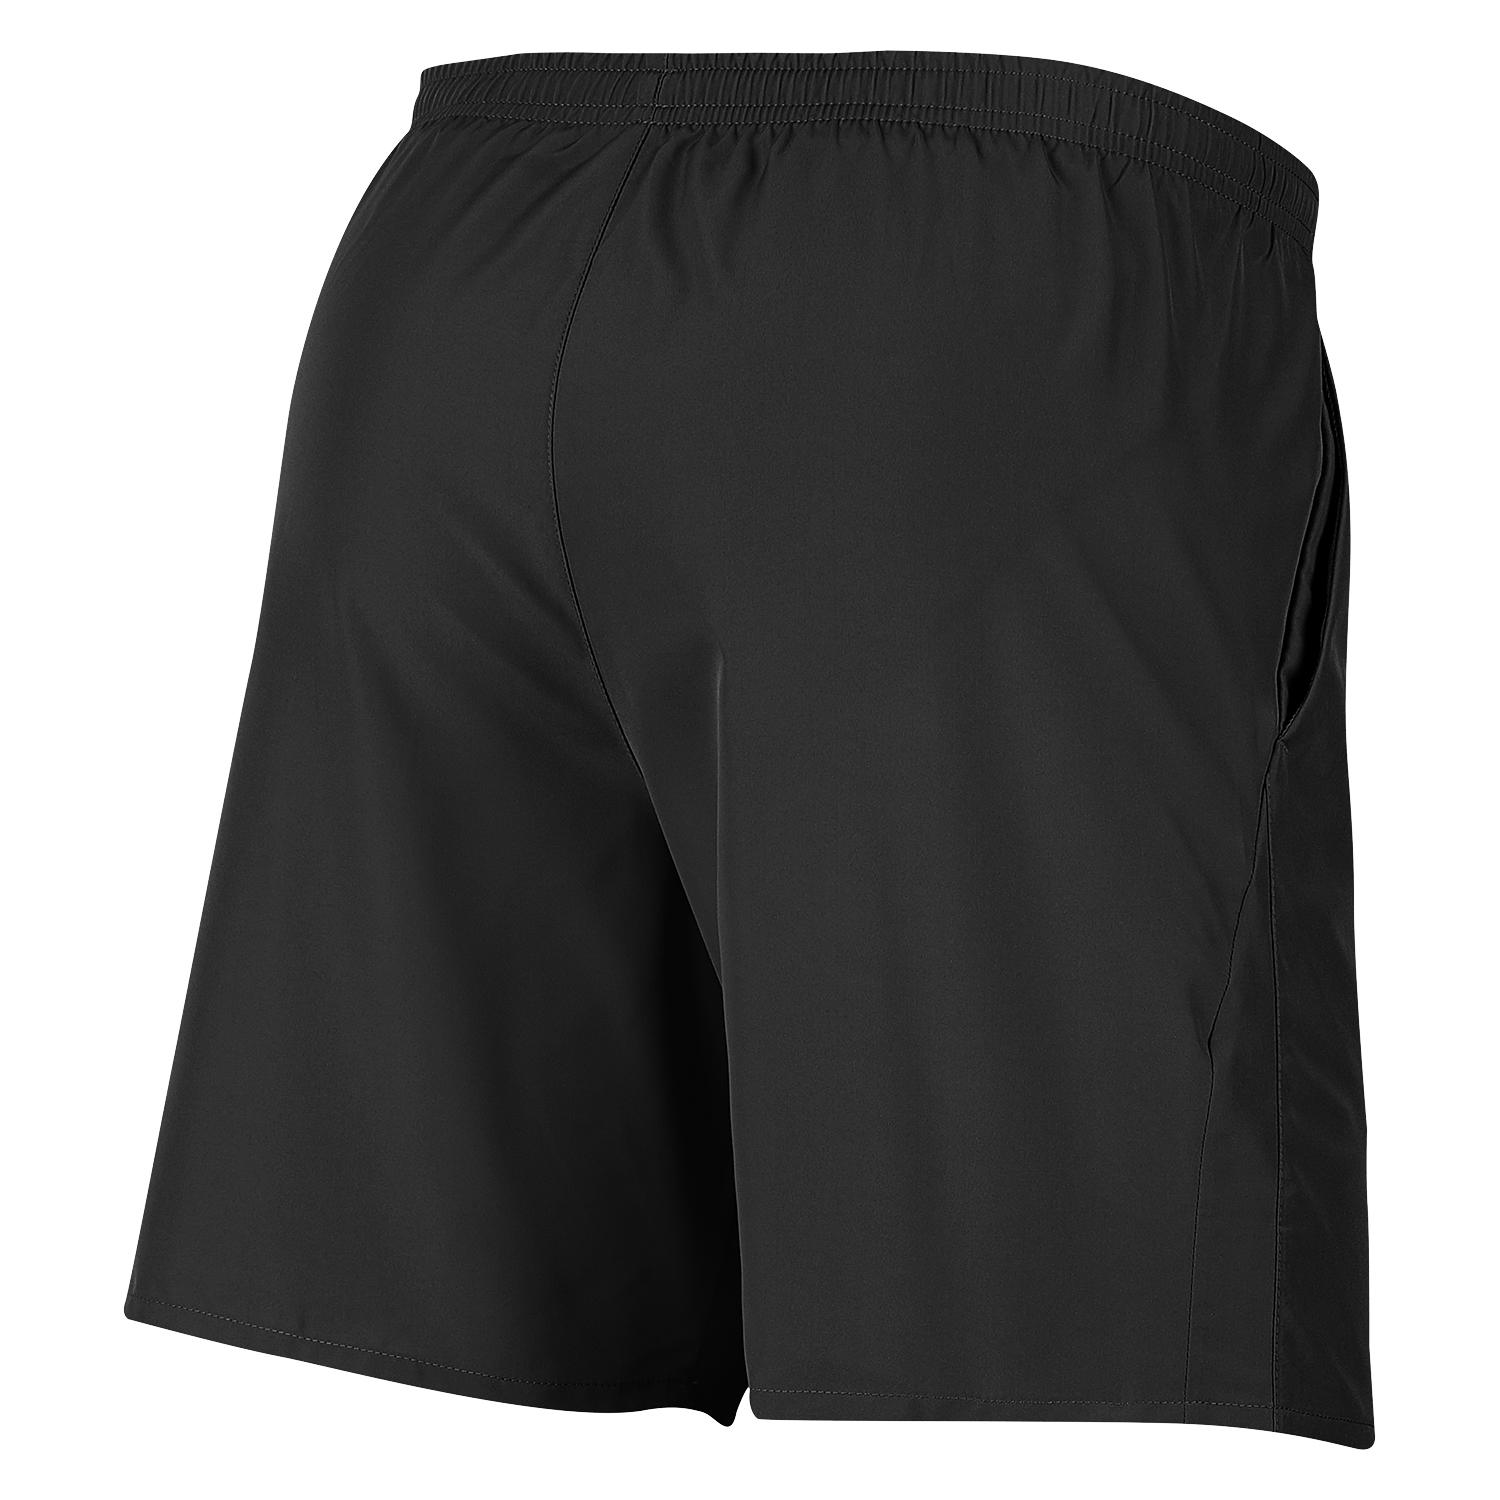 "Nike Mens Nike 7 Running Shorts"" - Black/Reflective Silv SP-ApparelShorts-Mens Nike"